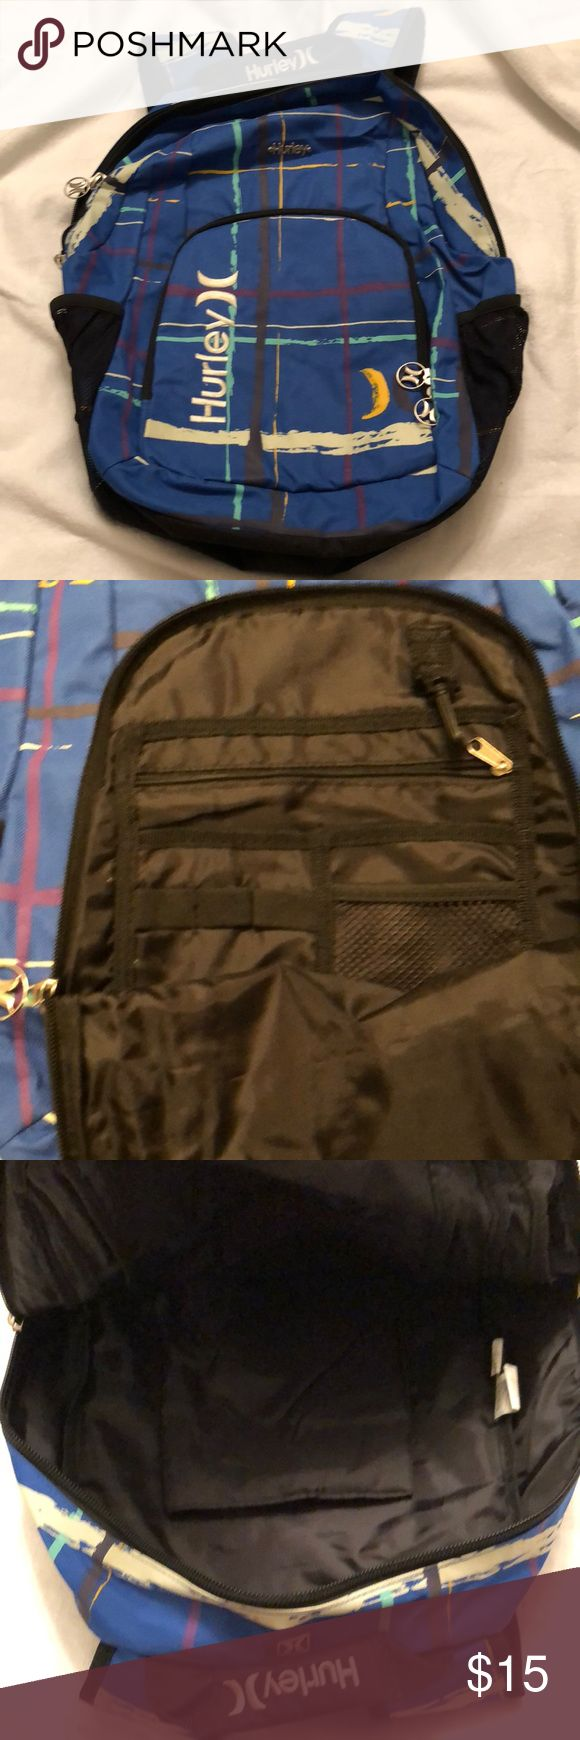 LIKE NEW! Hurley Surf backpack Hurley surf backpack- blue with white embroidery on the pocket and top handle. Lots of inside pockets as well as two side pockets. WORN ONCE on a trip.  Smoke free, pet free- ships in 24 hours Hurley Bags Backpacks